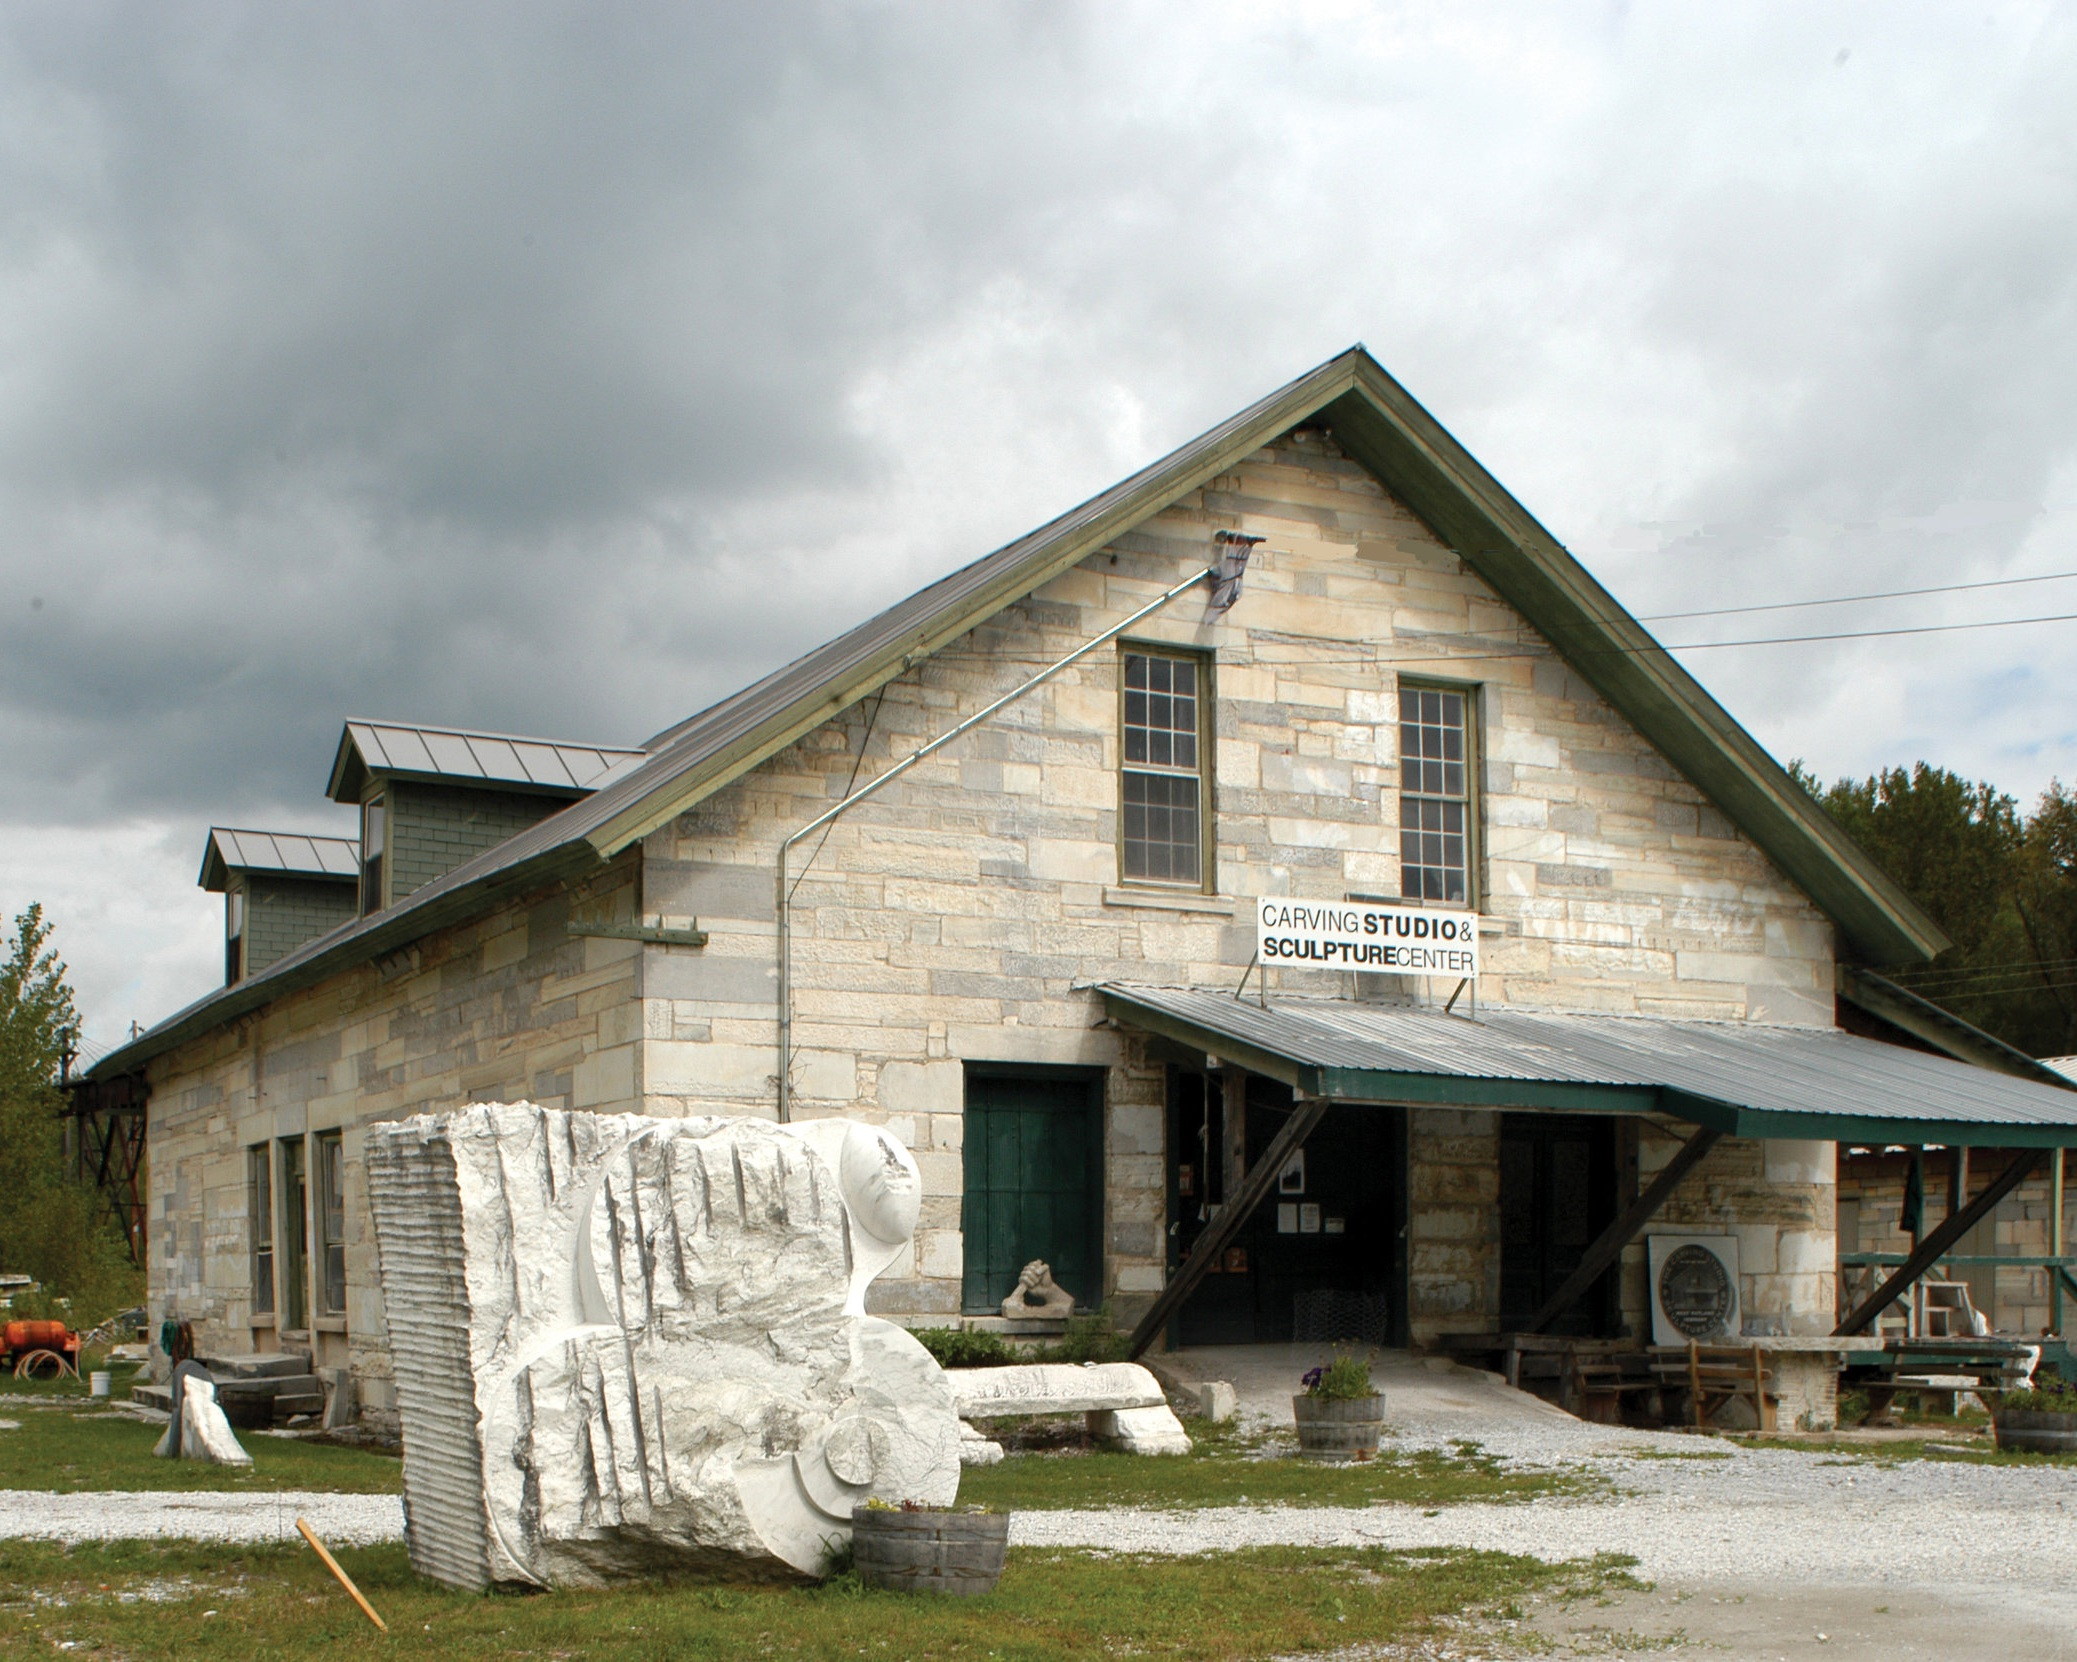 West-Rutland-Vermont-Carving-Studio.jpg